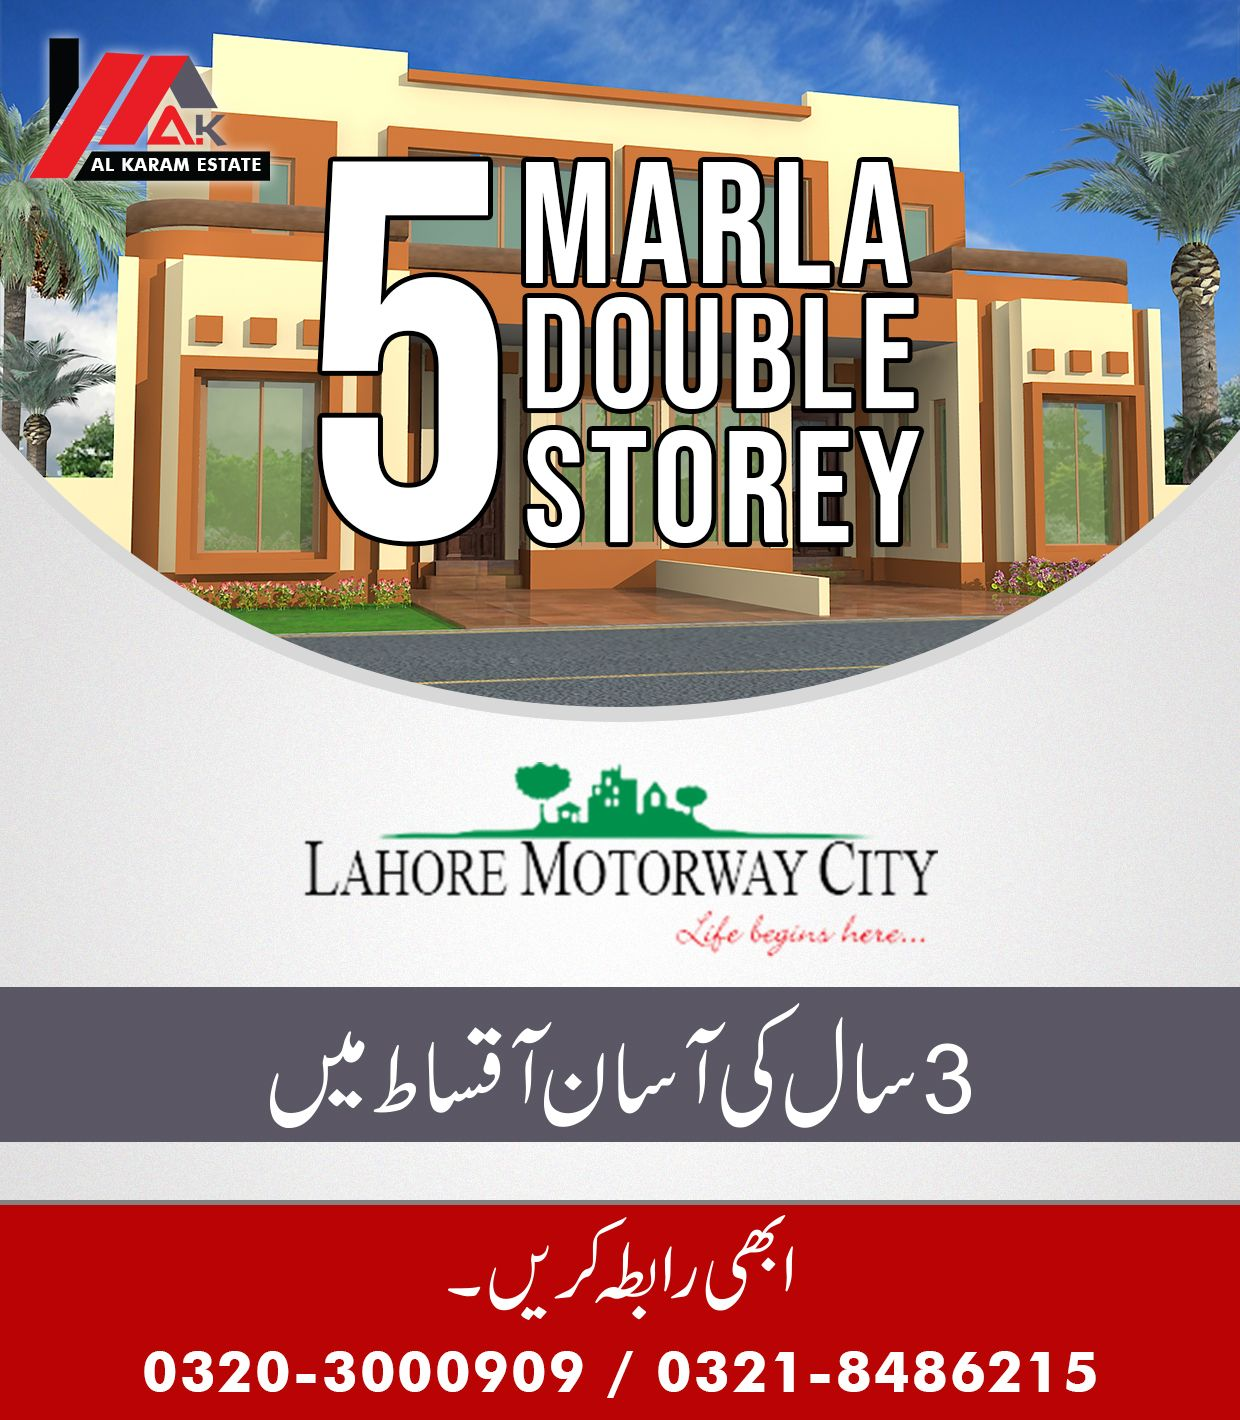 5 Marla Double Storey Houses are Available on easy #Installments in